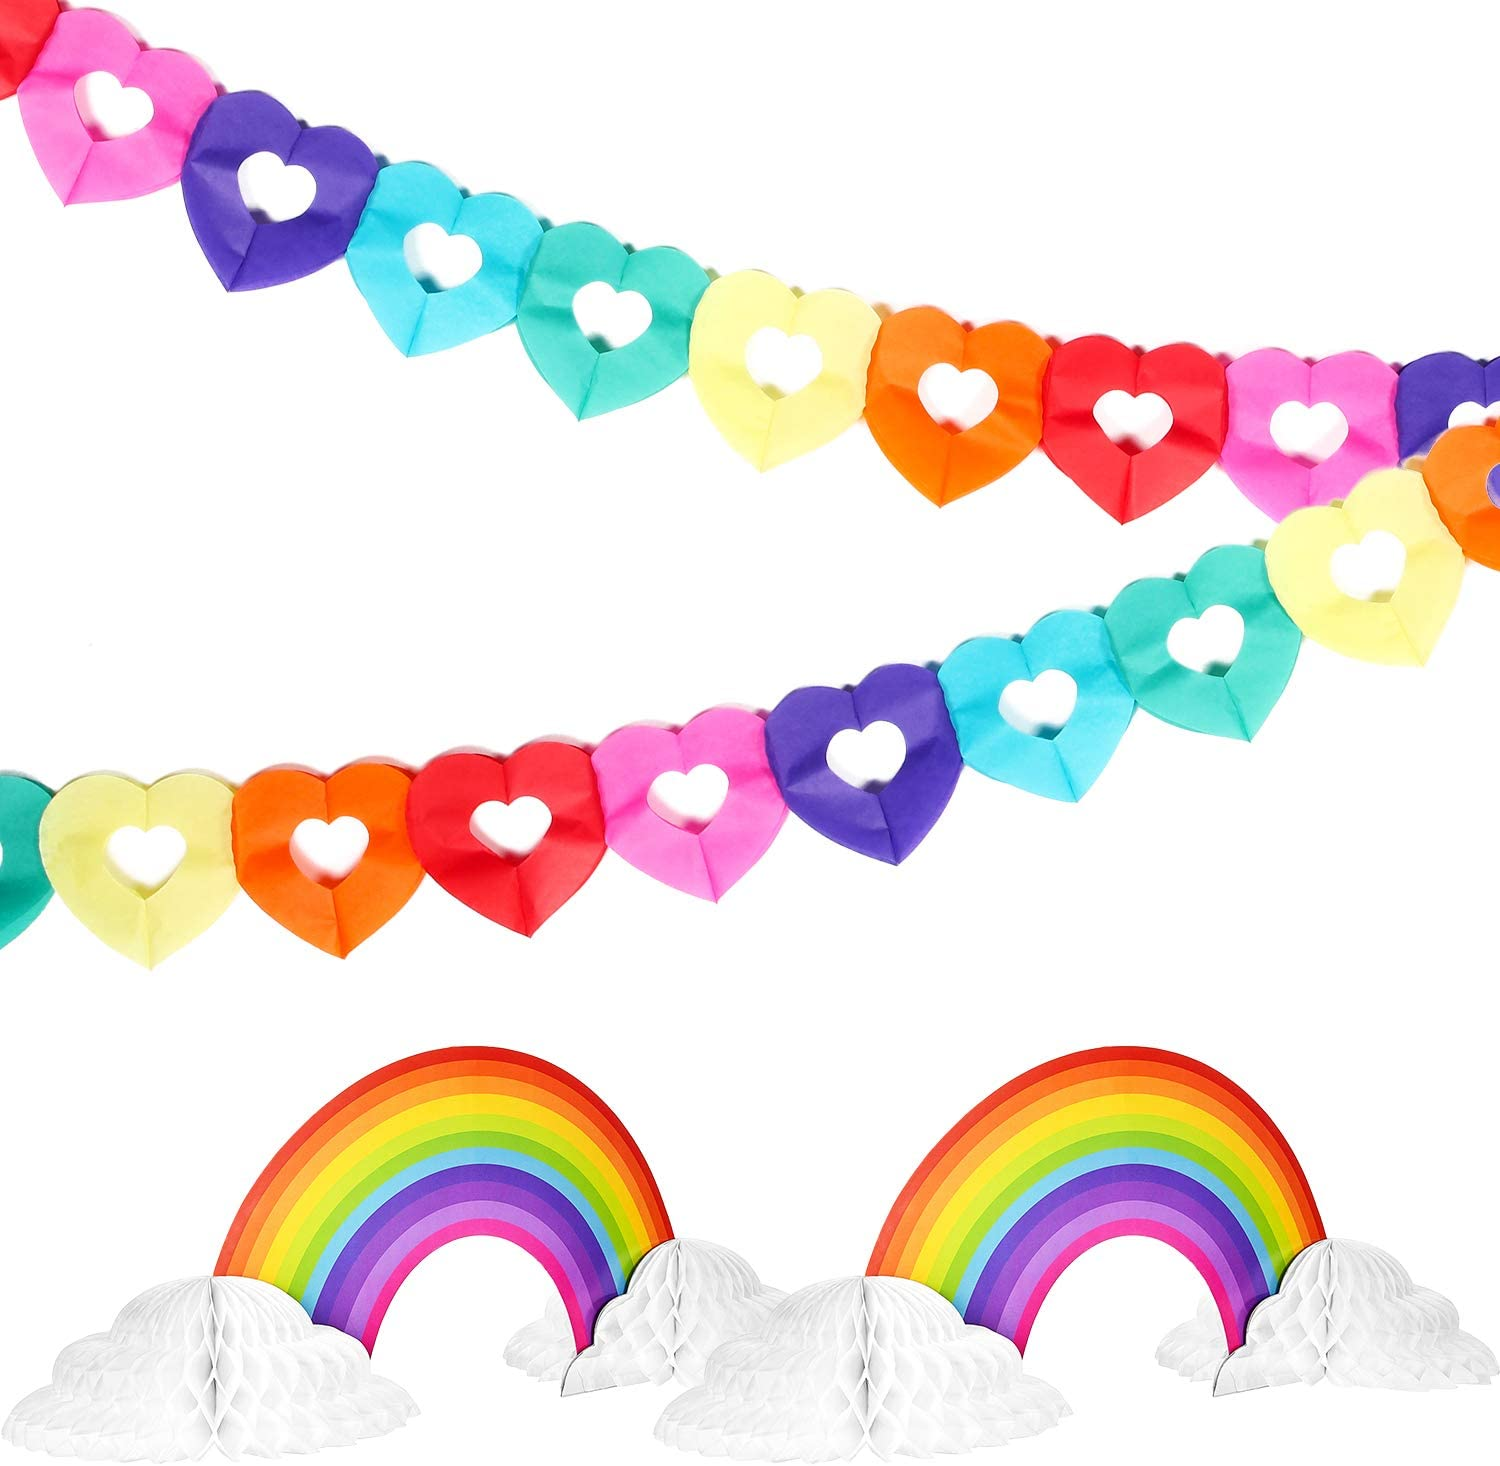 2 Pieces Rainbow Honeycomb Paper Centerpiece Rainbow Cloud Decoration and 2 Pieces Rainbow Heart Banner Rainbow Hanging Garland Heart Shaped for for Birthday Party Baby Shower Decoration